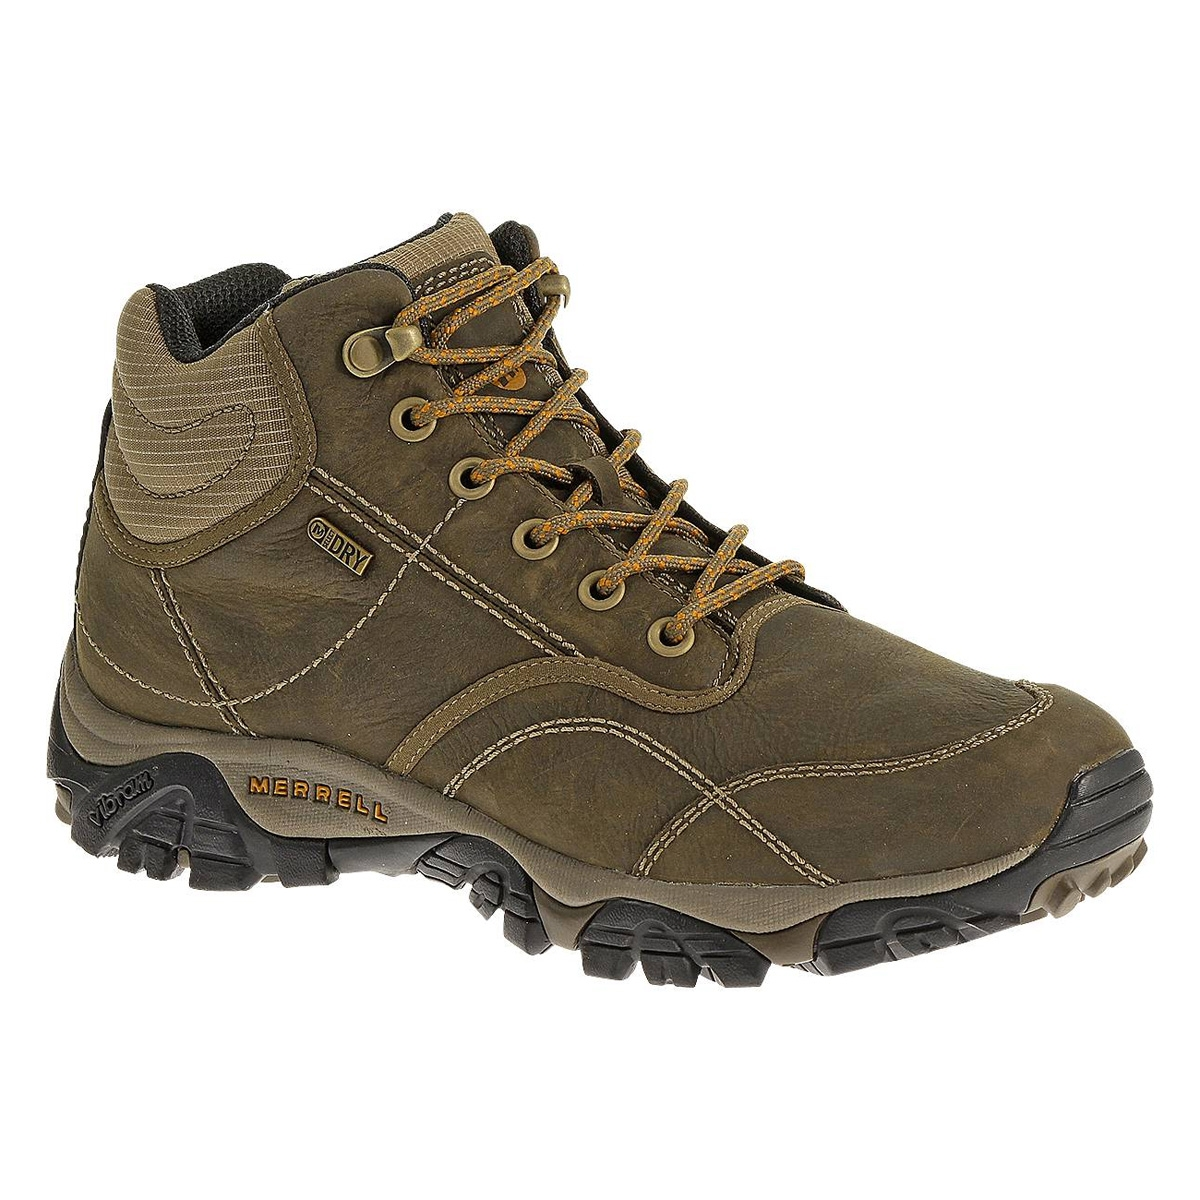 Image of Merrell Moab Rover Mid Waterproof Walking Boots (Men's) - Kangaroo